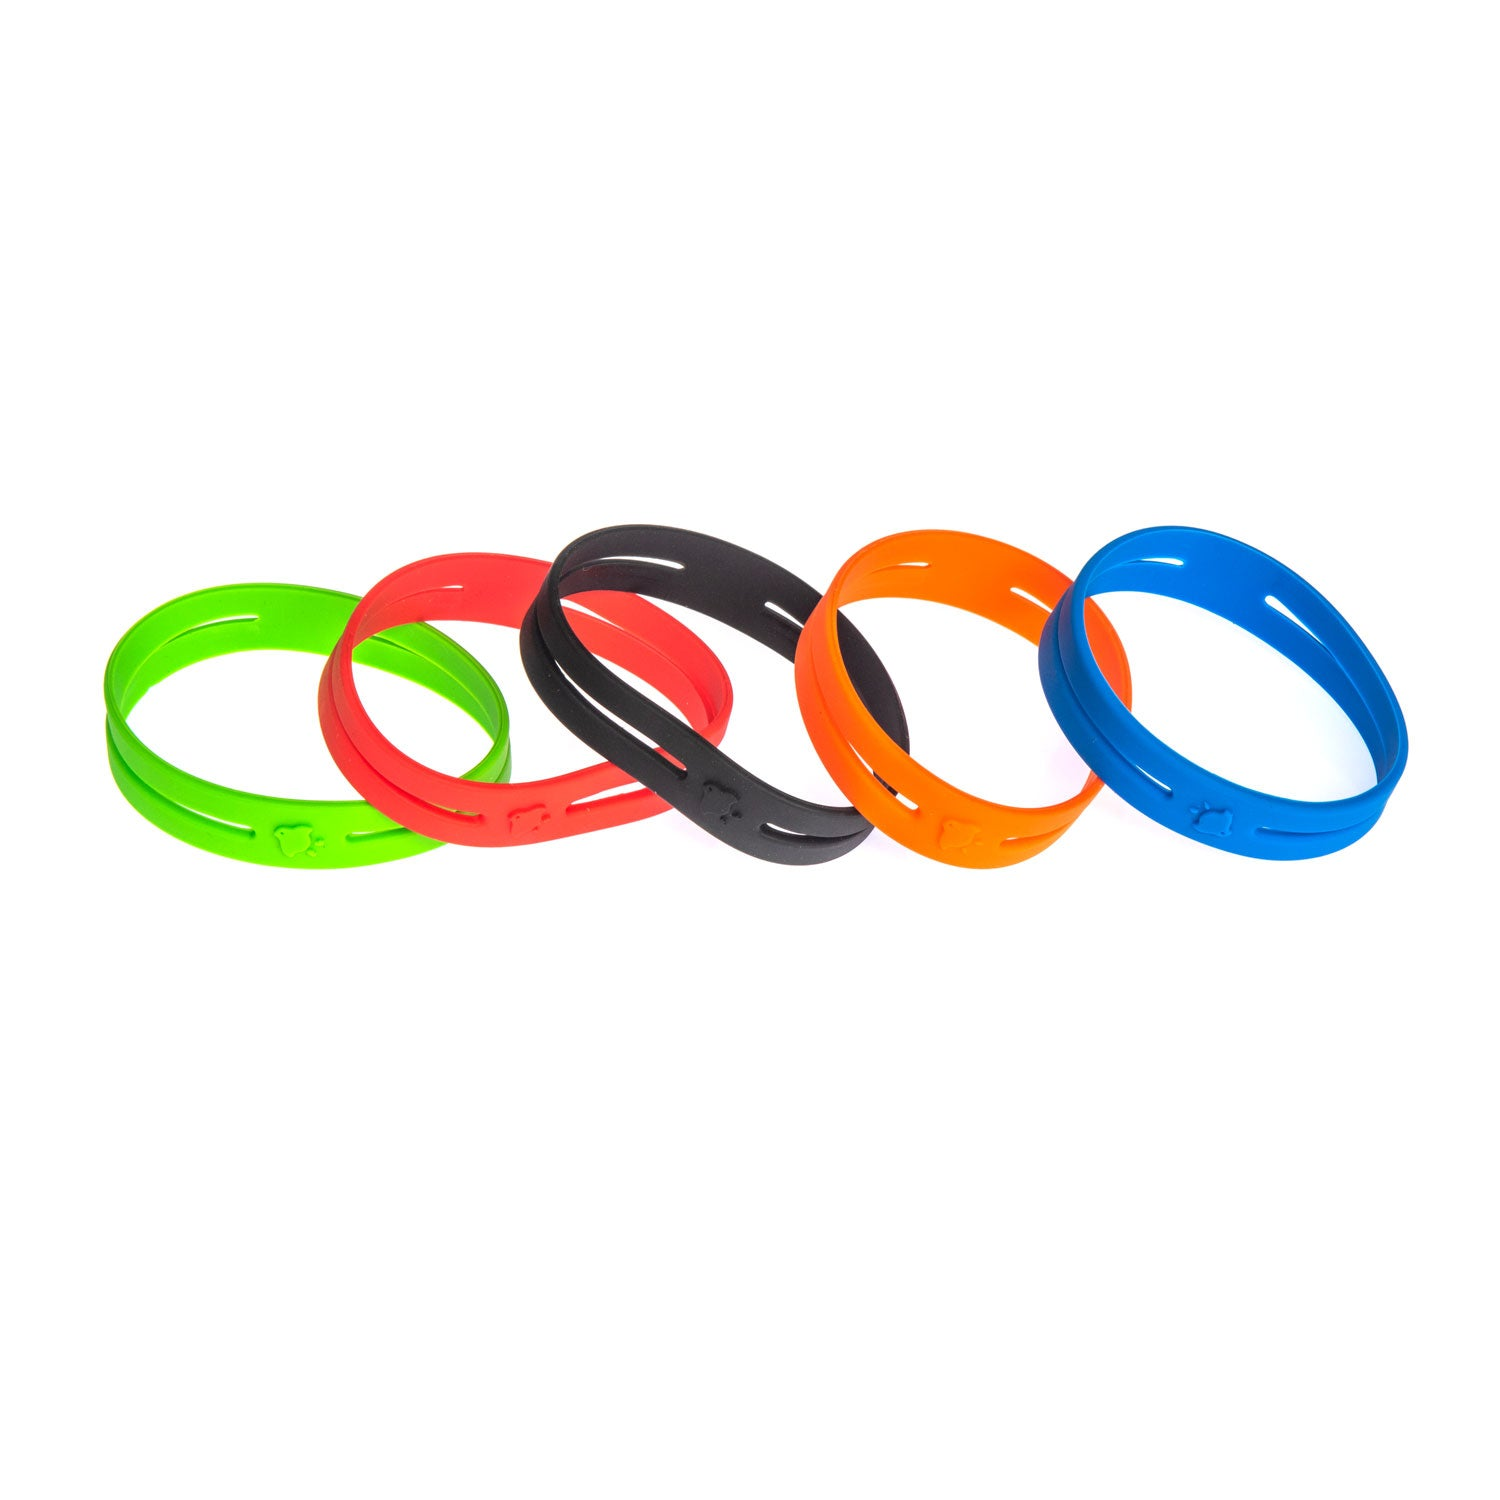 Grifiti Band Joes 4 inch Silicone Cross Bands H X Style Wrist Box Book Shirt Wrap - Grifiti